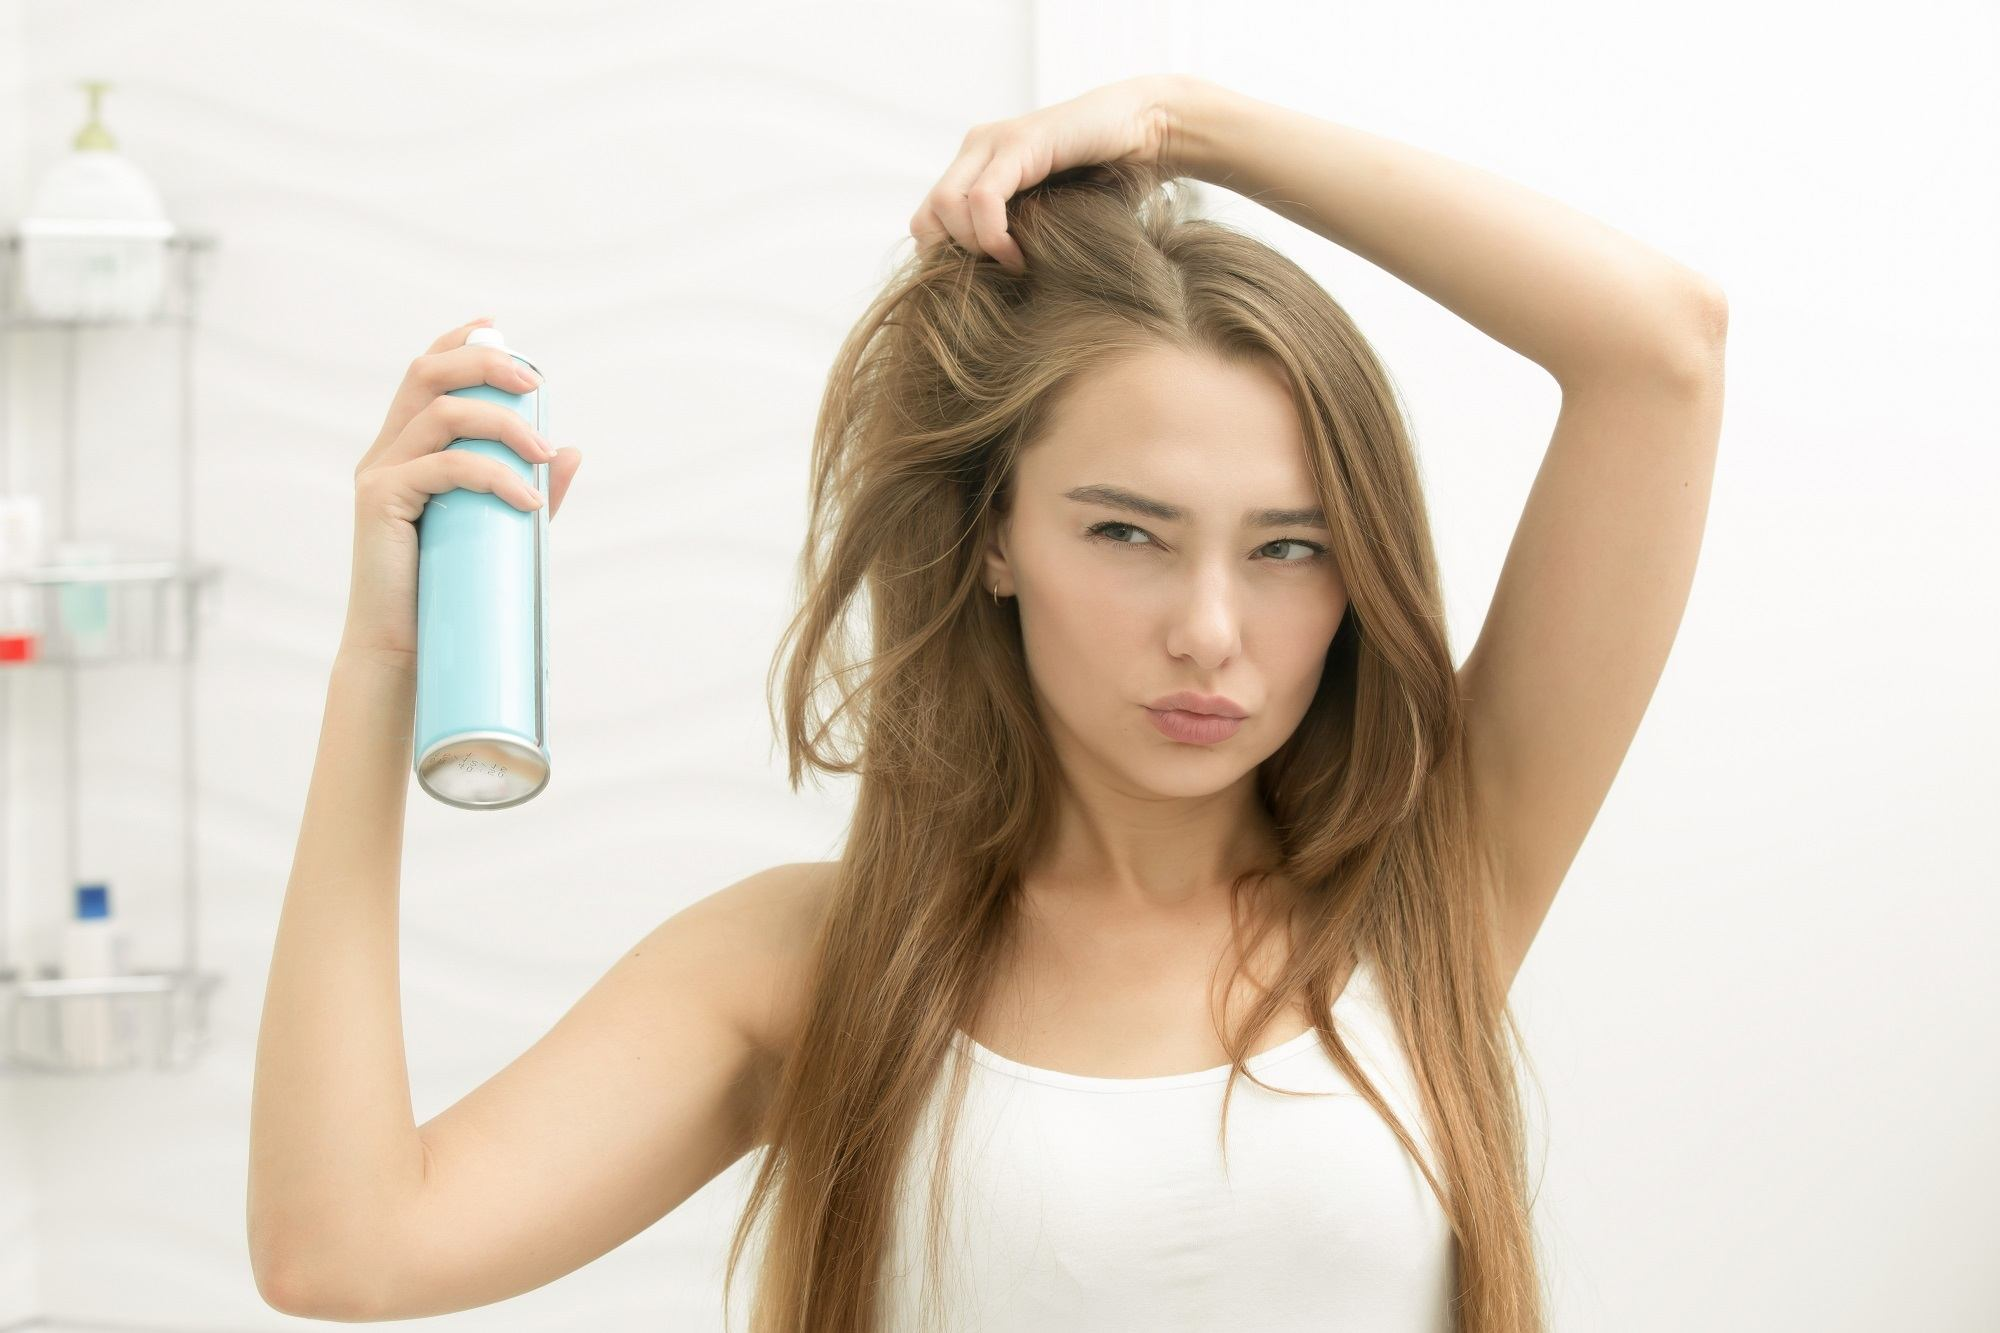 How to get beautiful hair: Woman wearing a white tank top spraying on her long brown hair